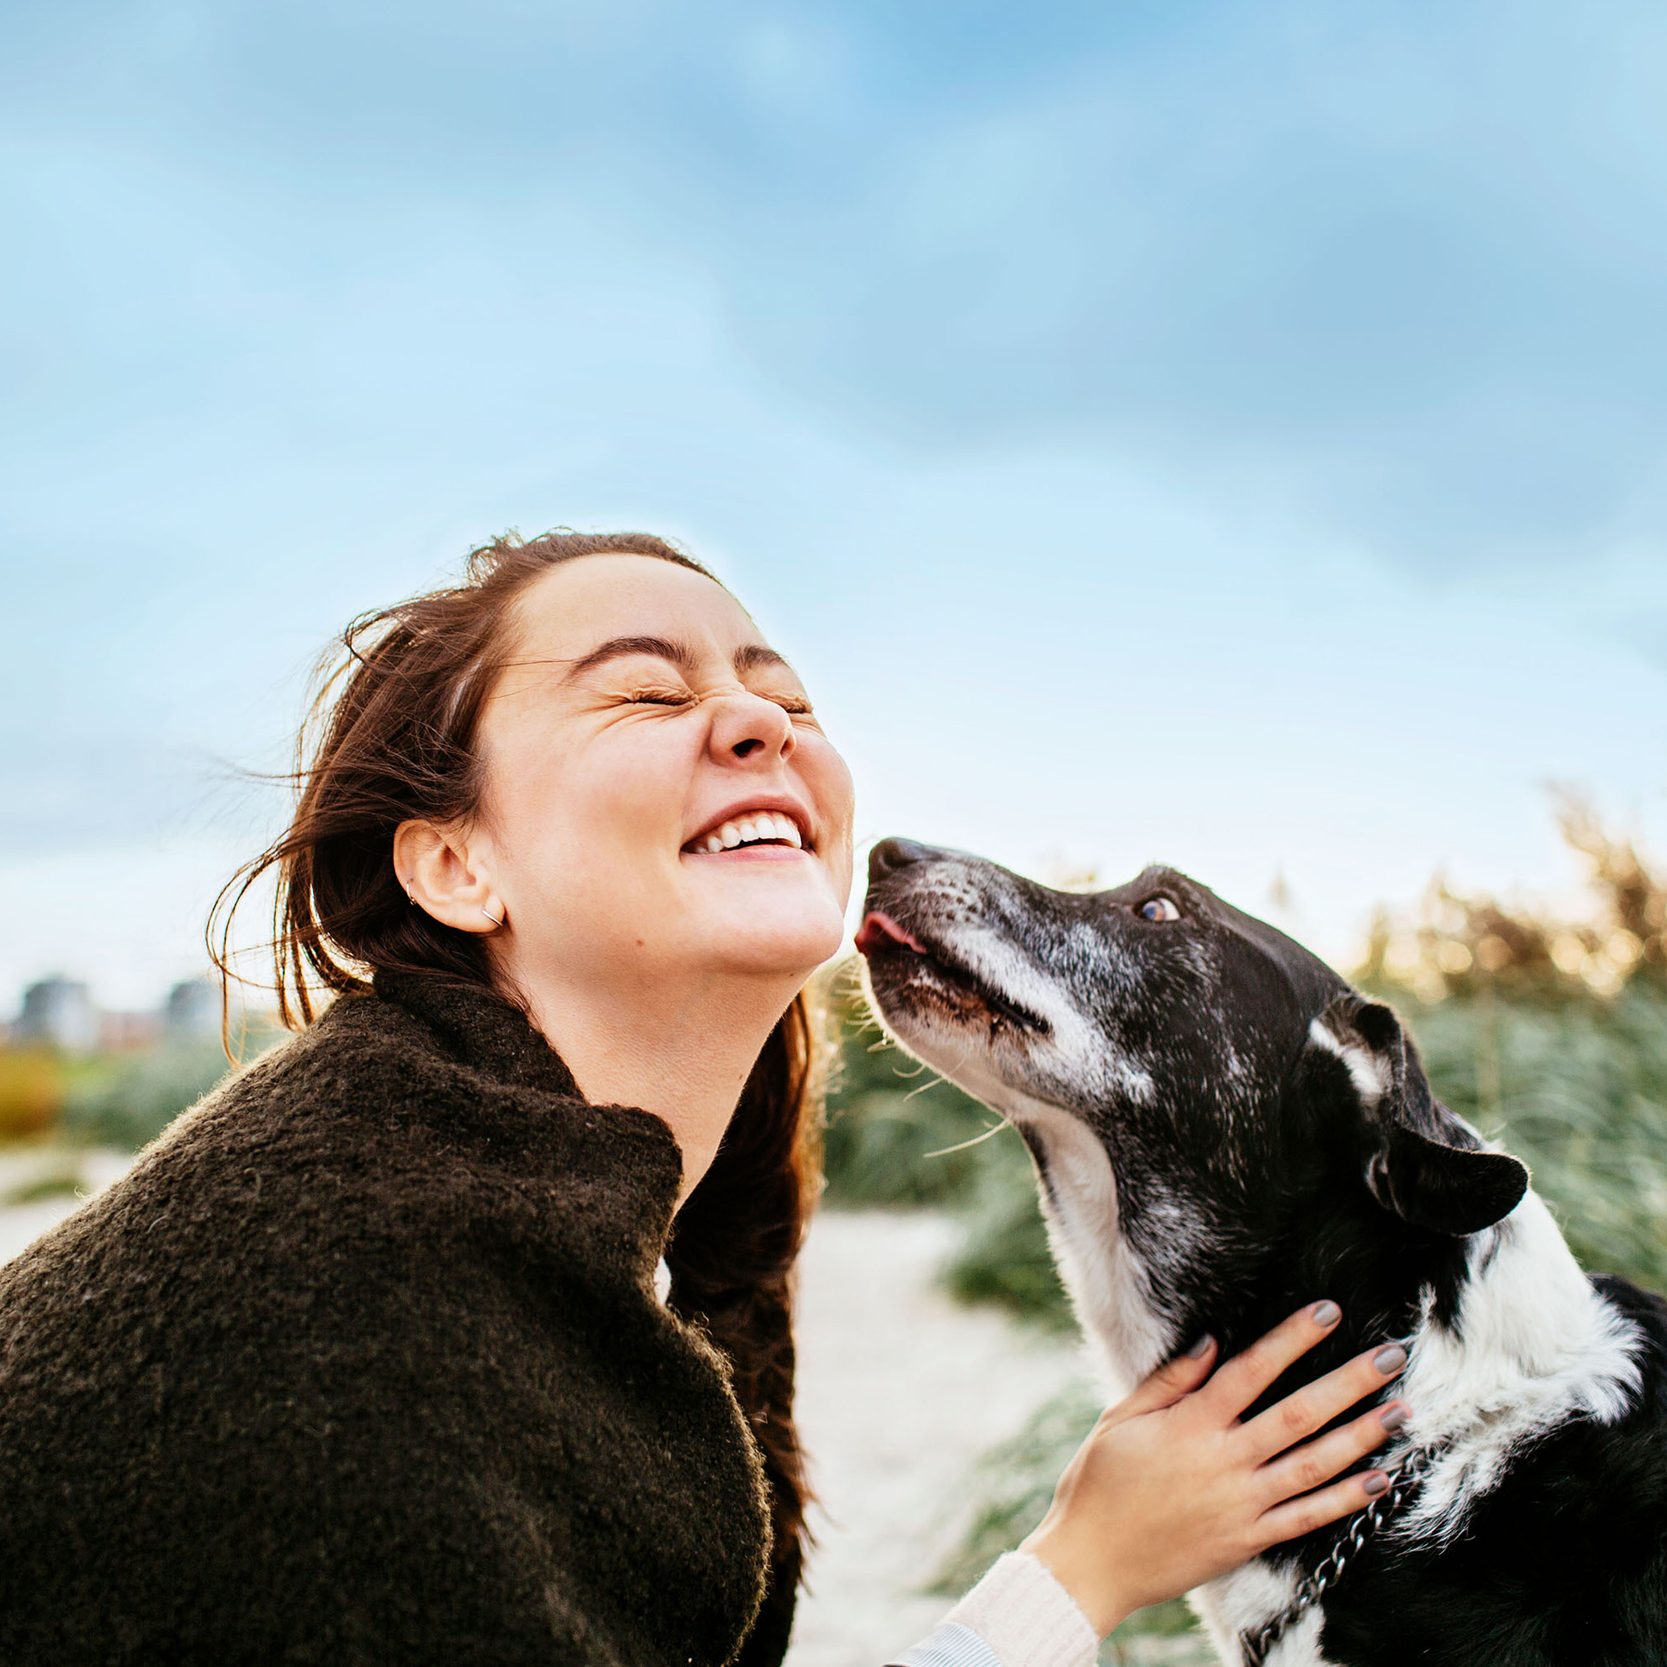 girl smiling with dog square